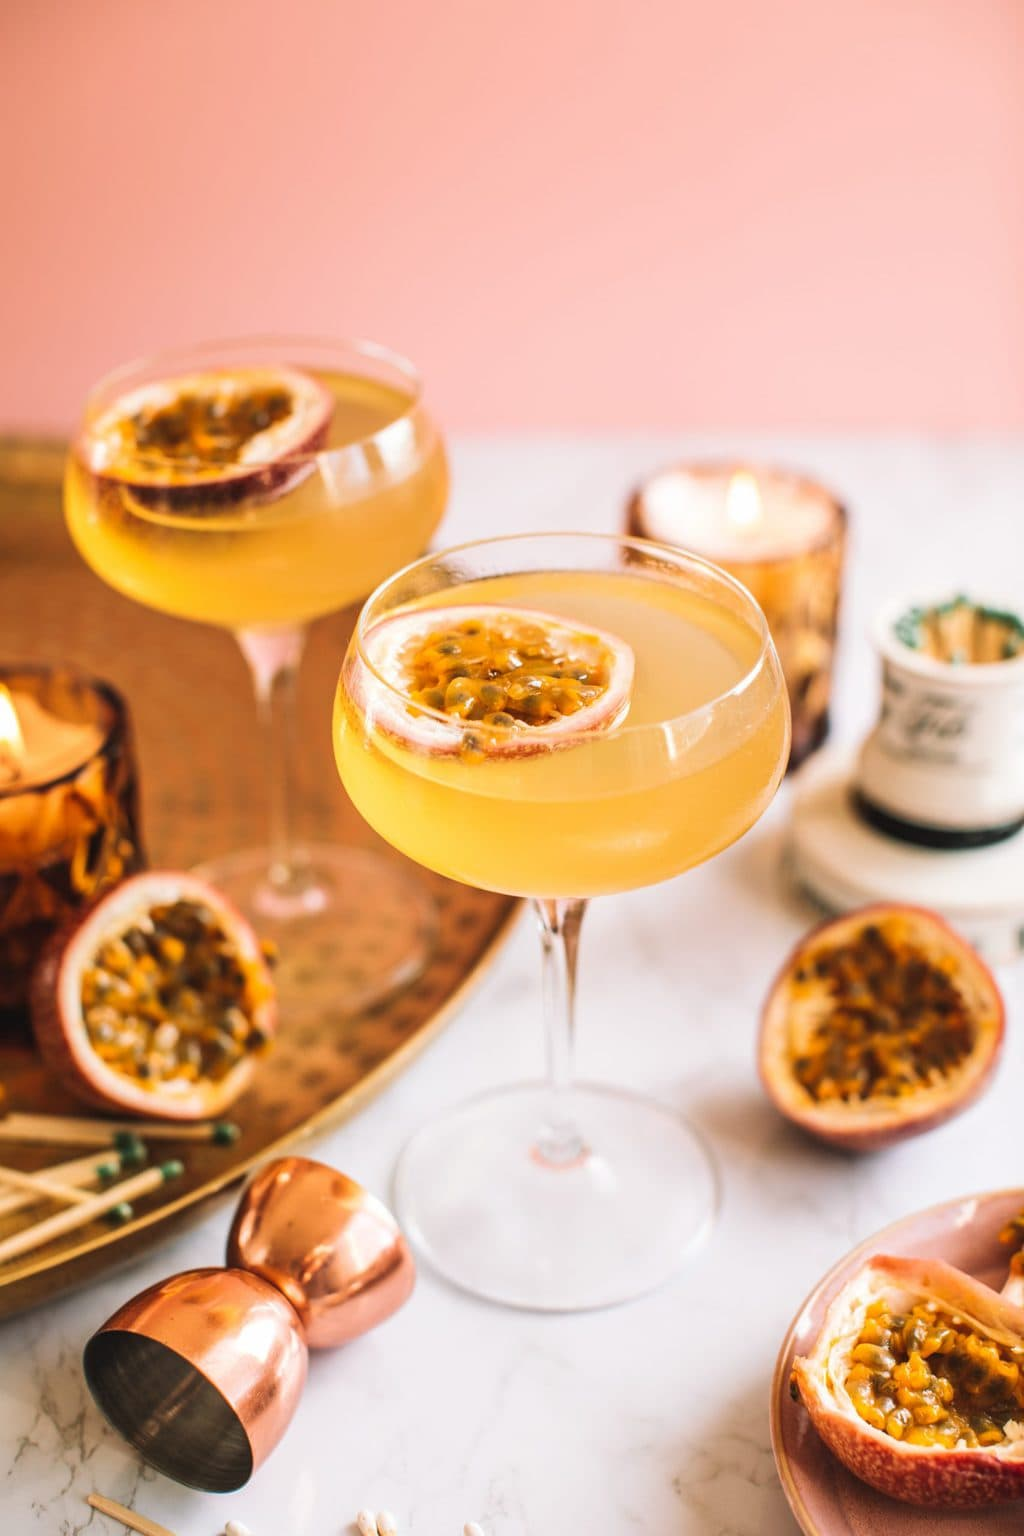 Passion fruit martini served in two glasses garnished with a passion fruit half.